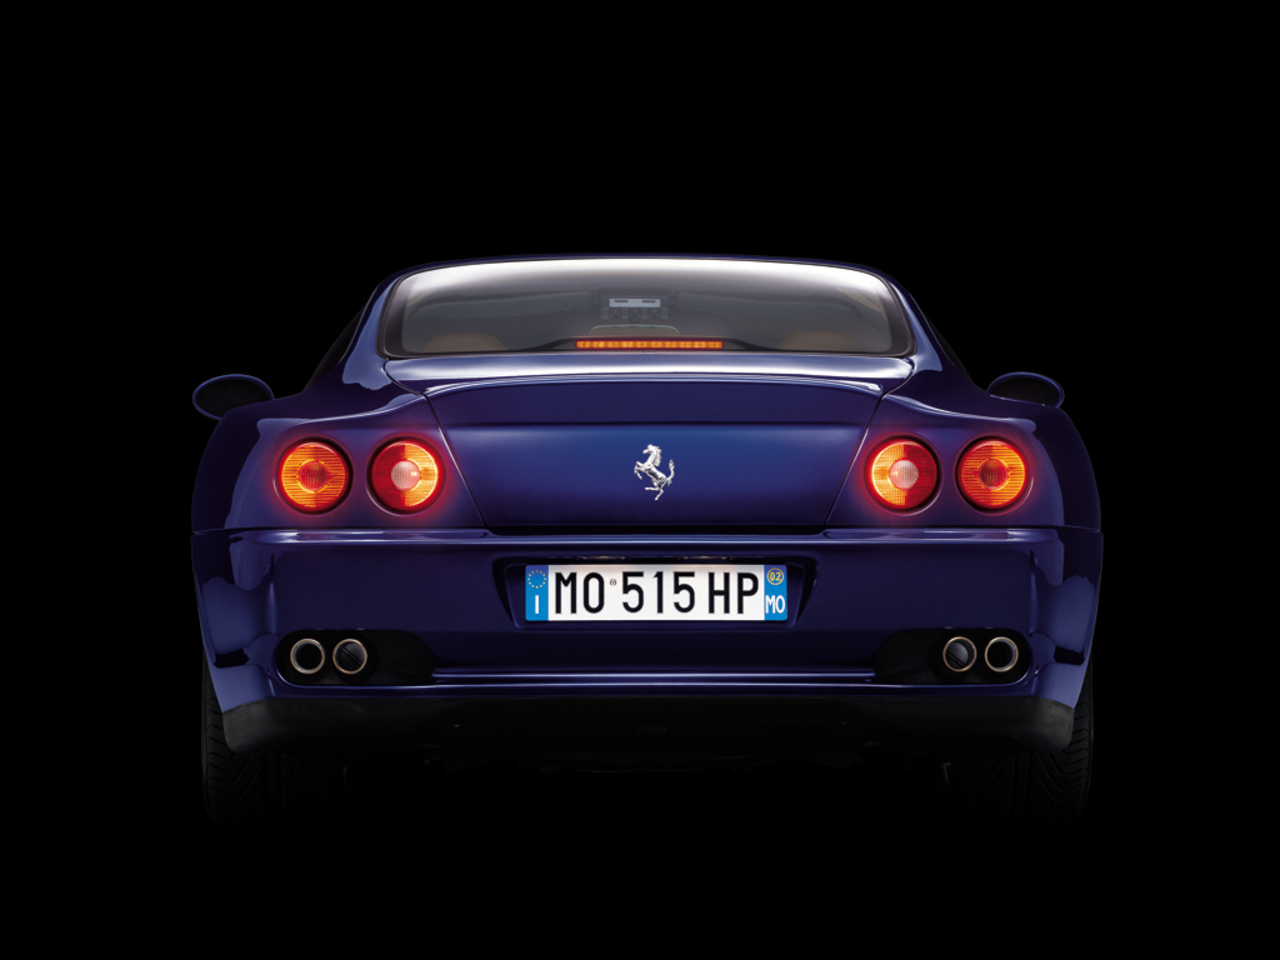 575M Maranello, rear view